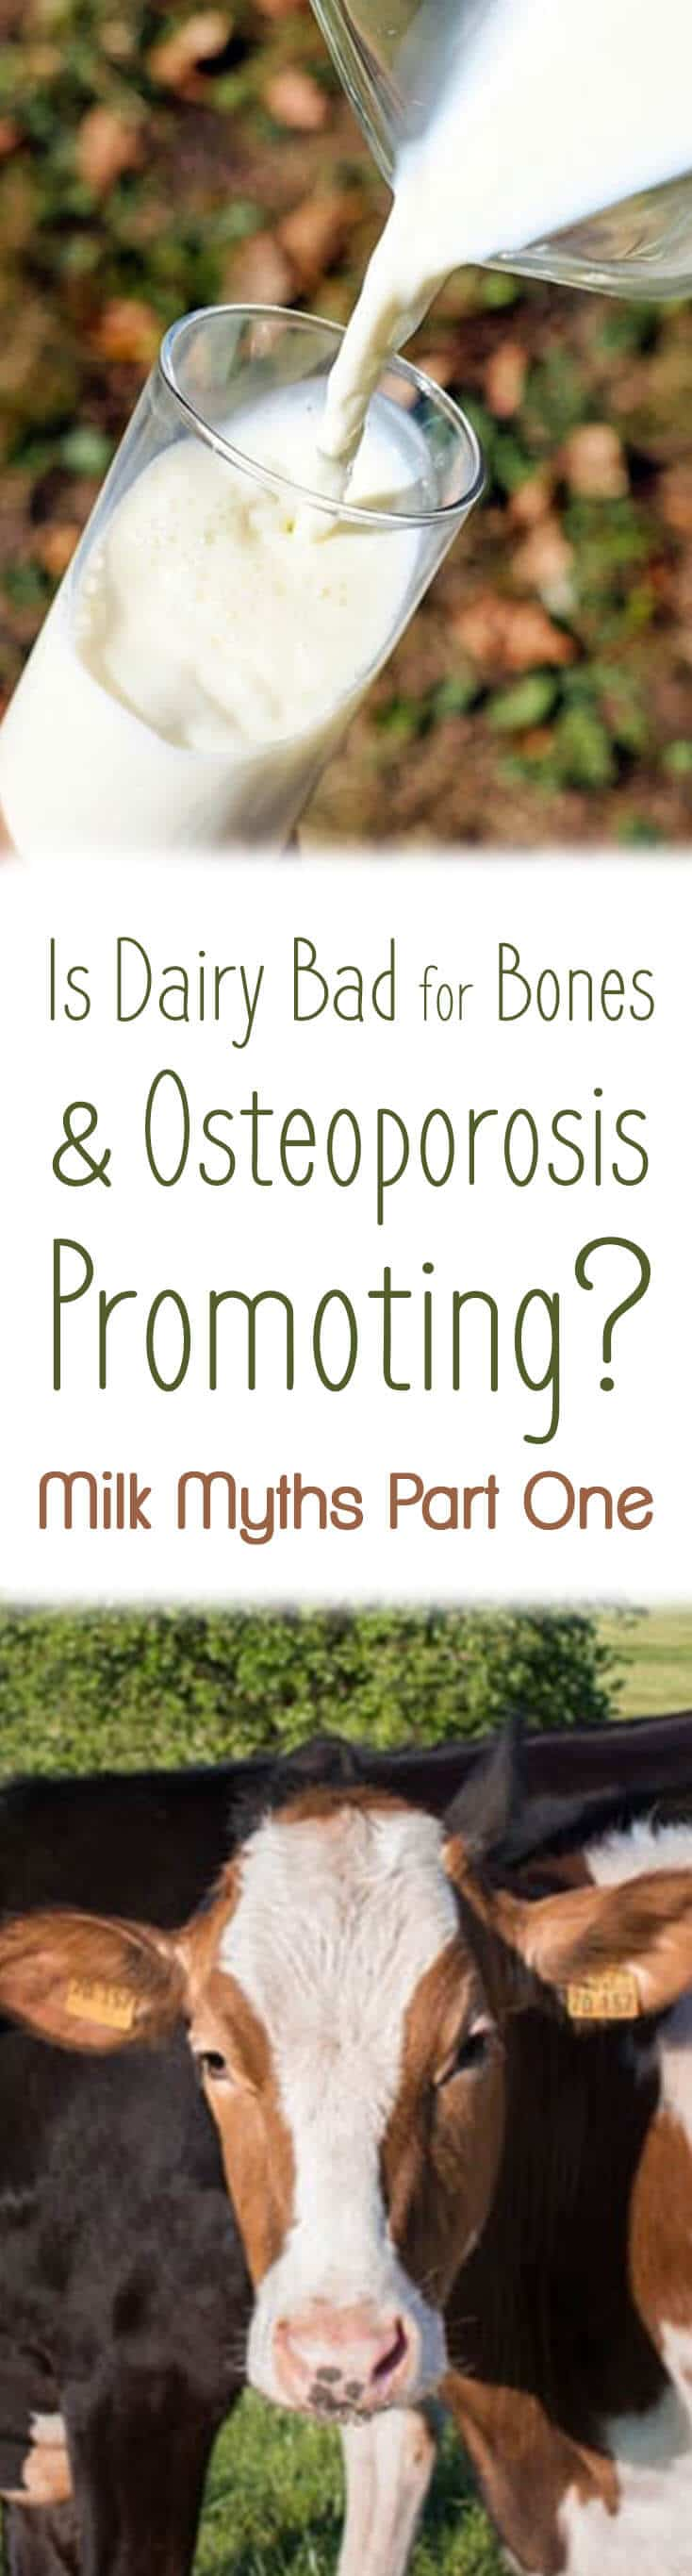 "A pinterest image of milk and cows with the text overlay ""Is Dairy Bad for Bones & Osteoporosis Promoting? Milk Myths Part One.\"""